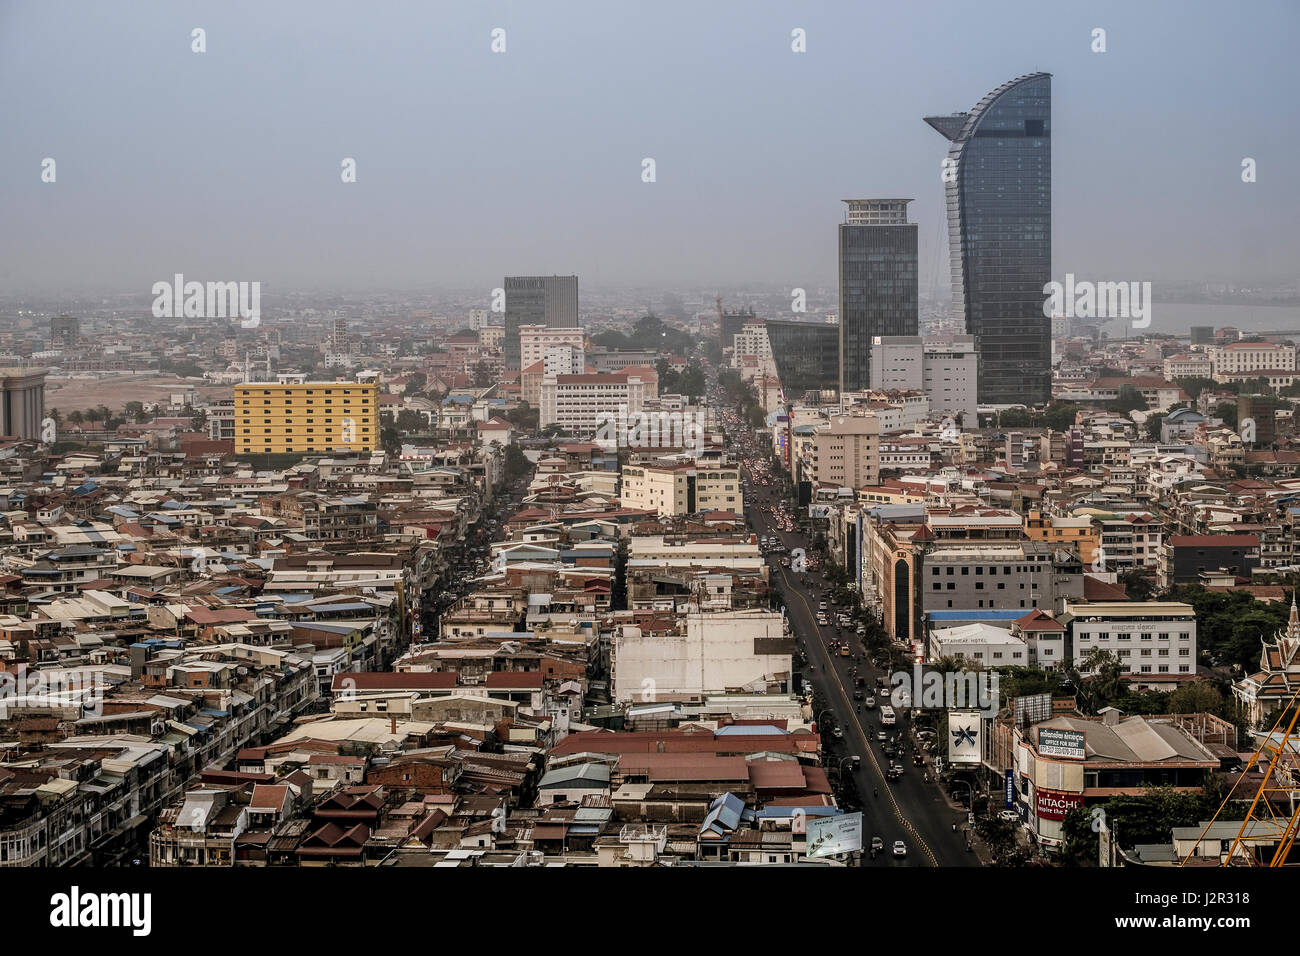 Phnom Penh city centre and skyline - Cambodia's capital city - Stock Image